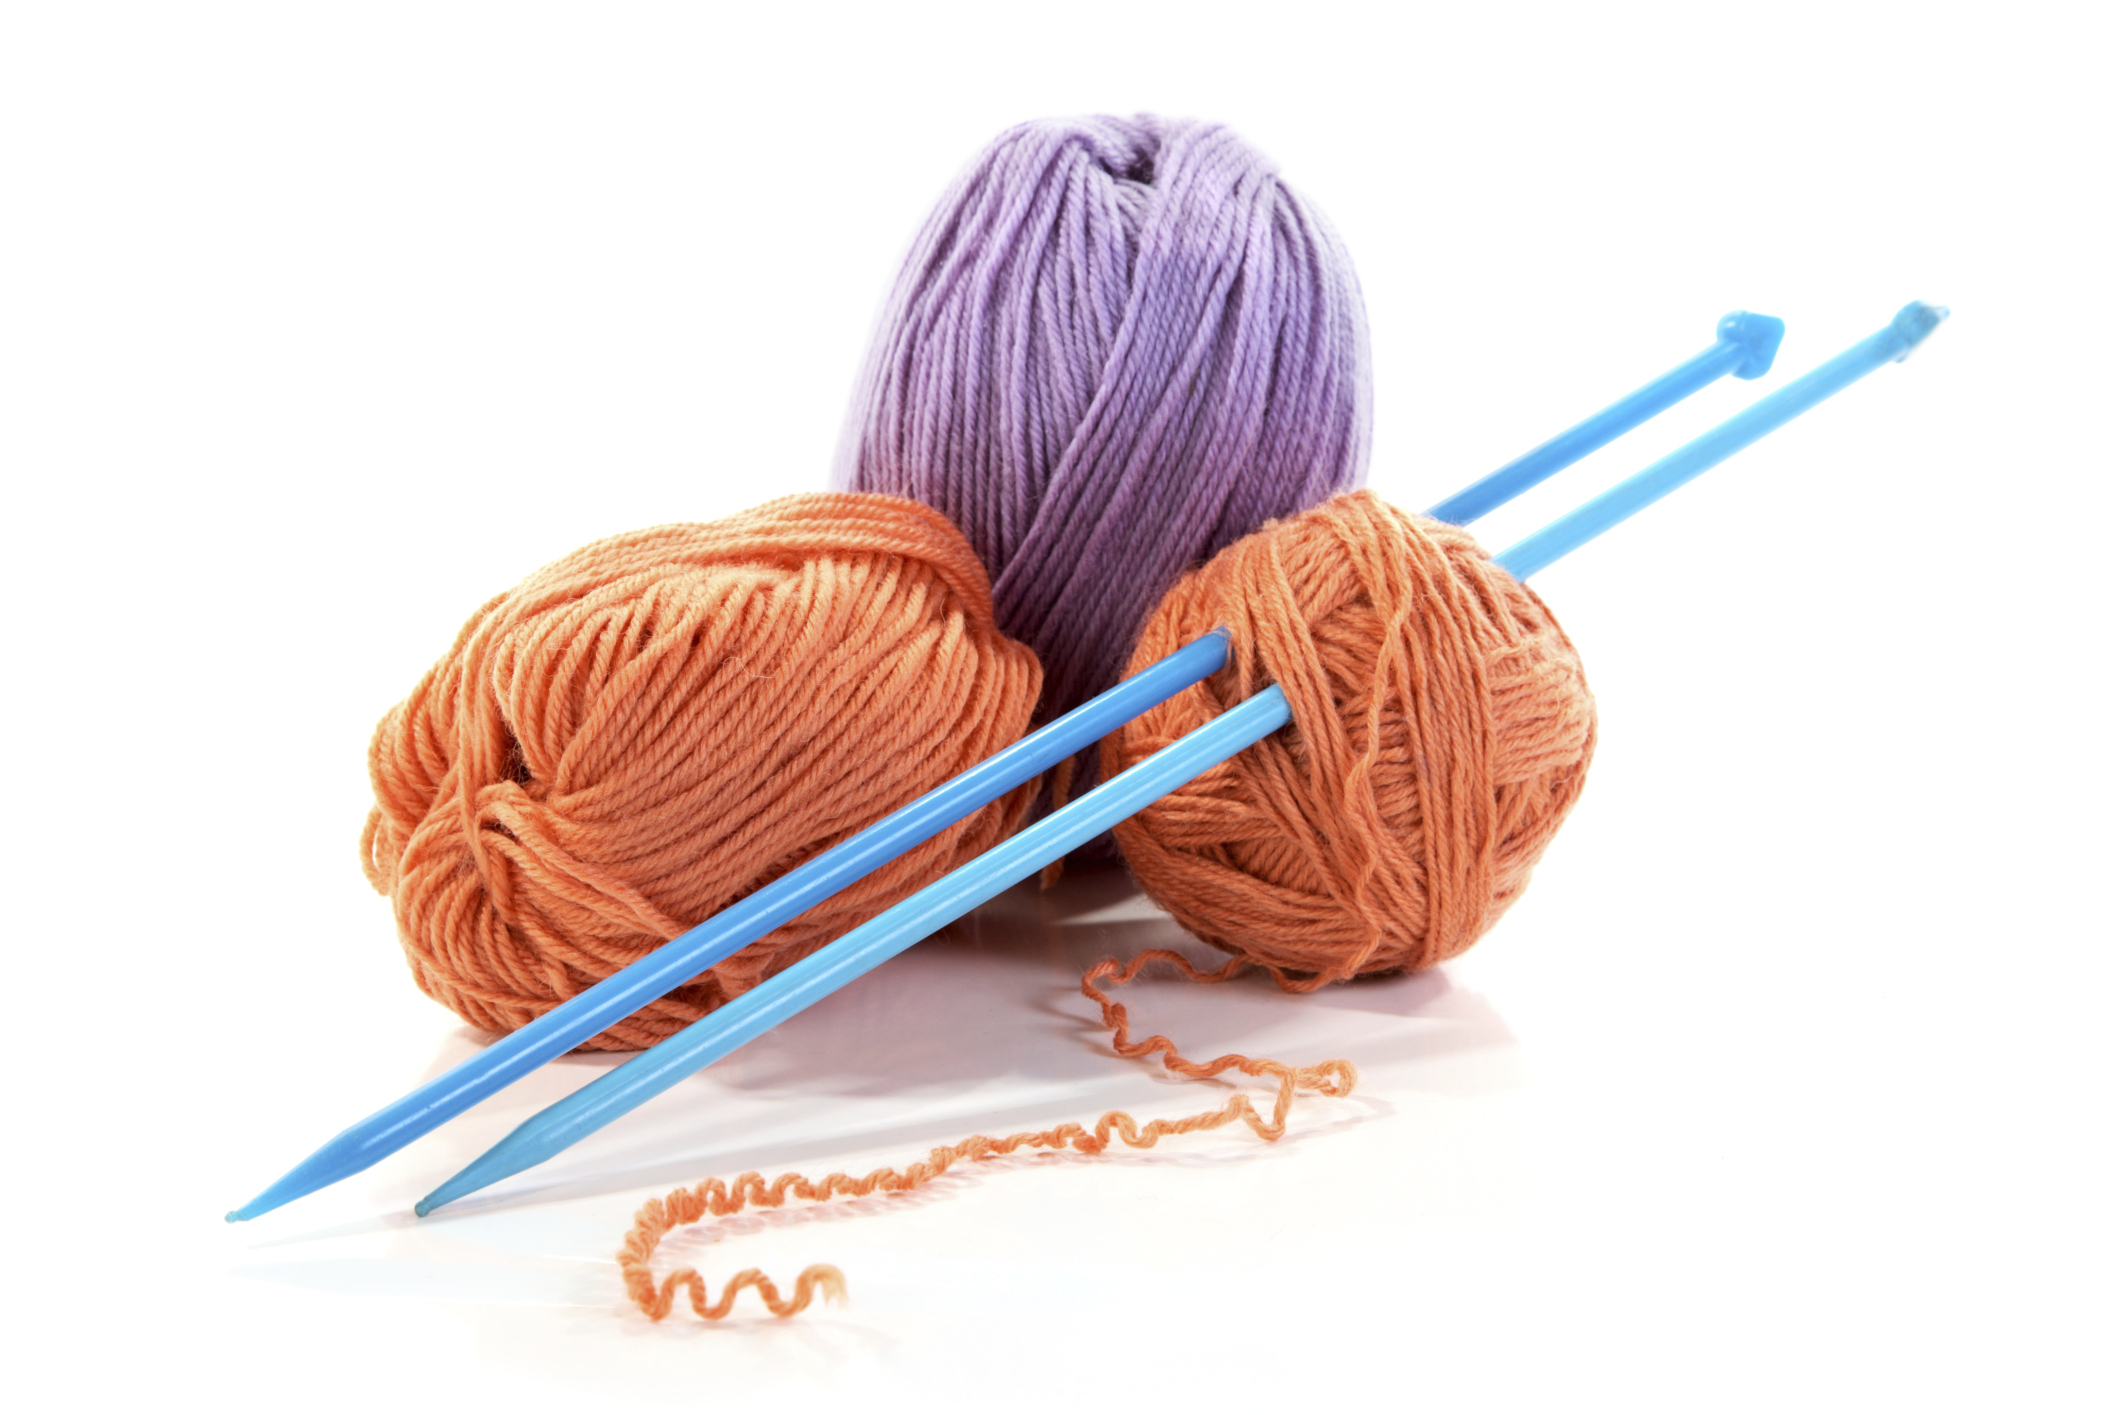 Knitting Groups Sydney : Join a craft or knitting group